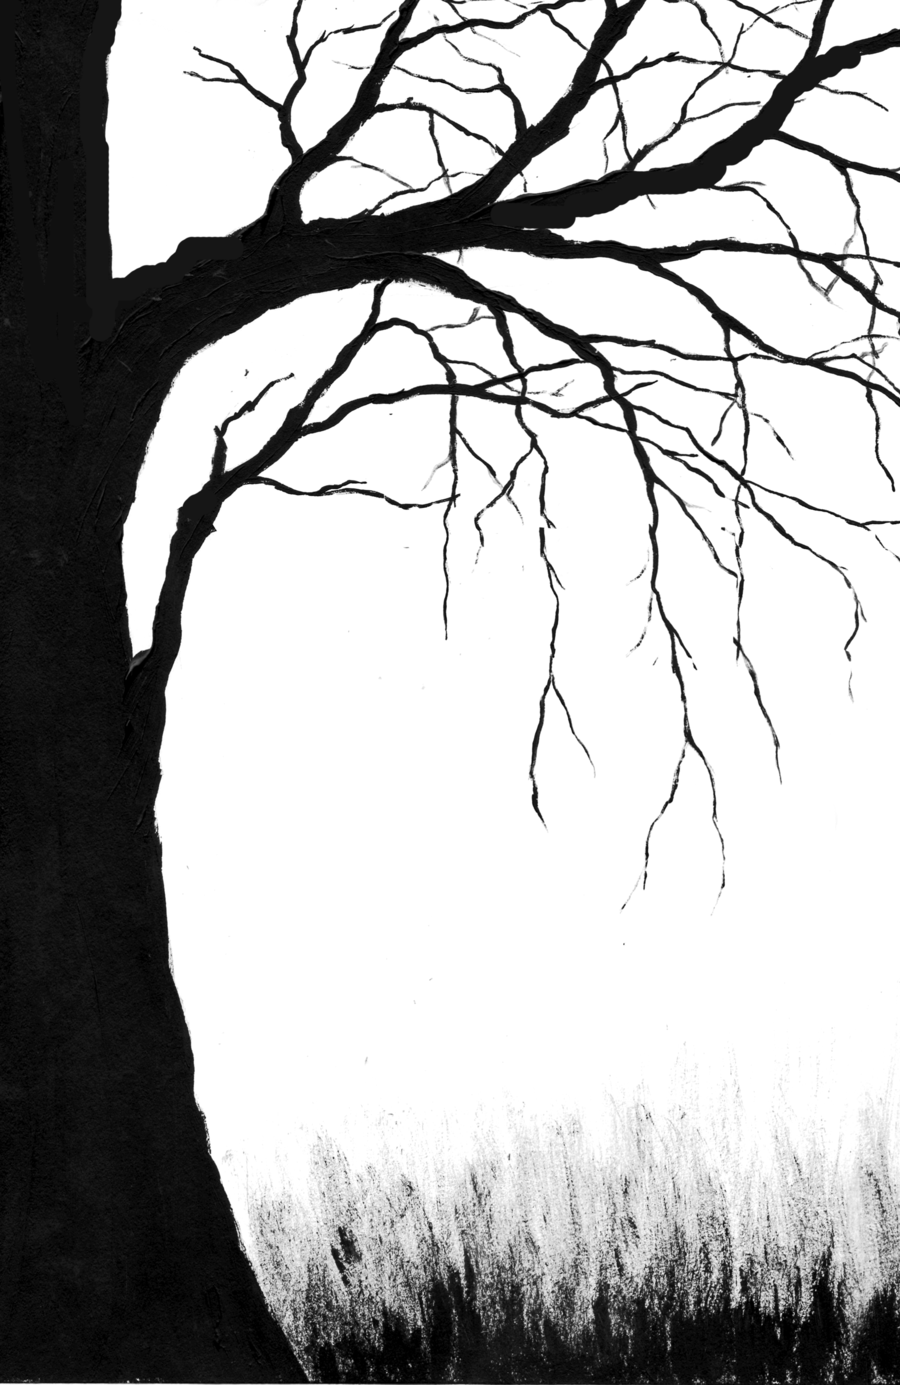 Free Creepy Forest Silhouette, Download Free Clip Art, Free.